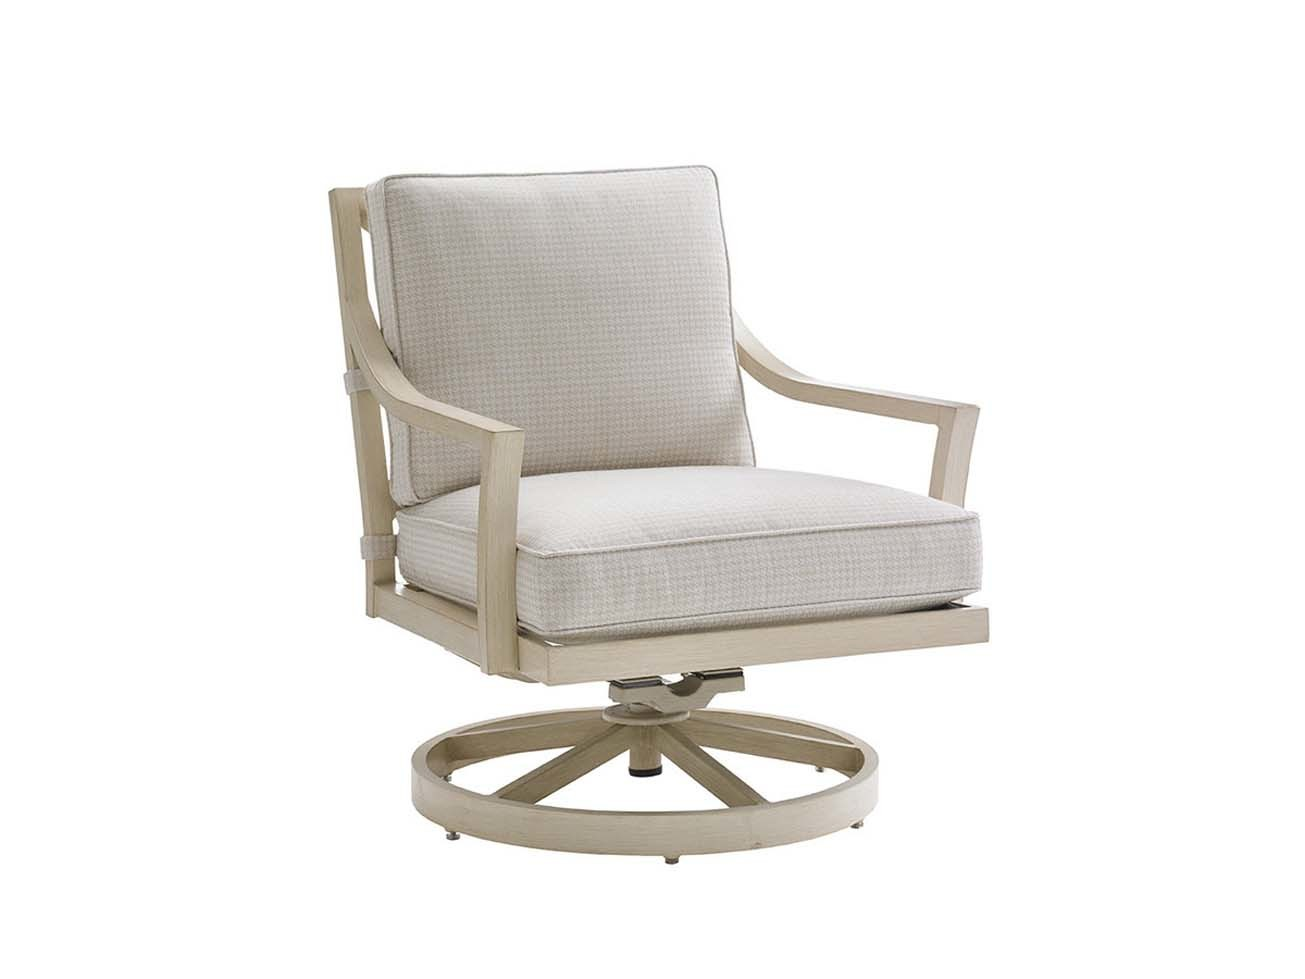 Misty Garden Swivel Rocker Lounge Chair Hauser S Patio